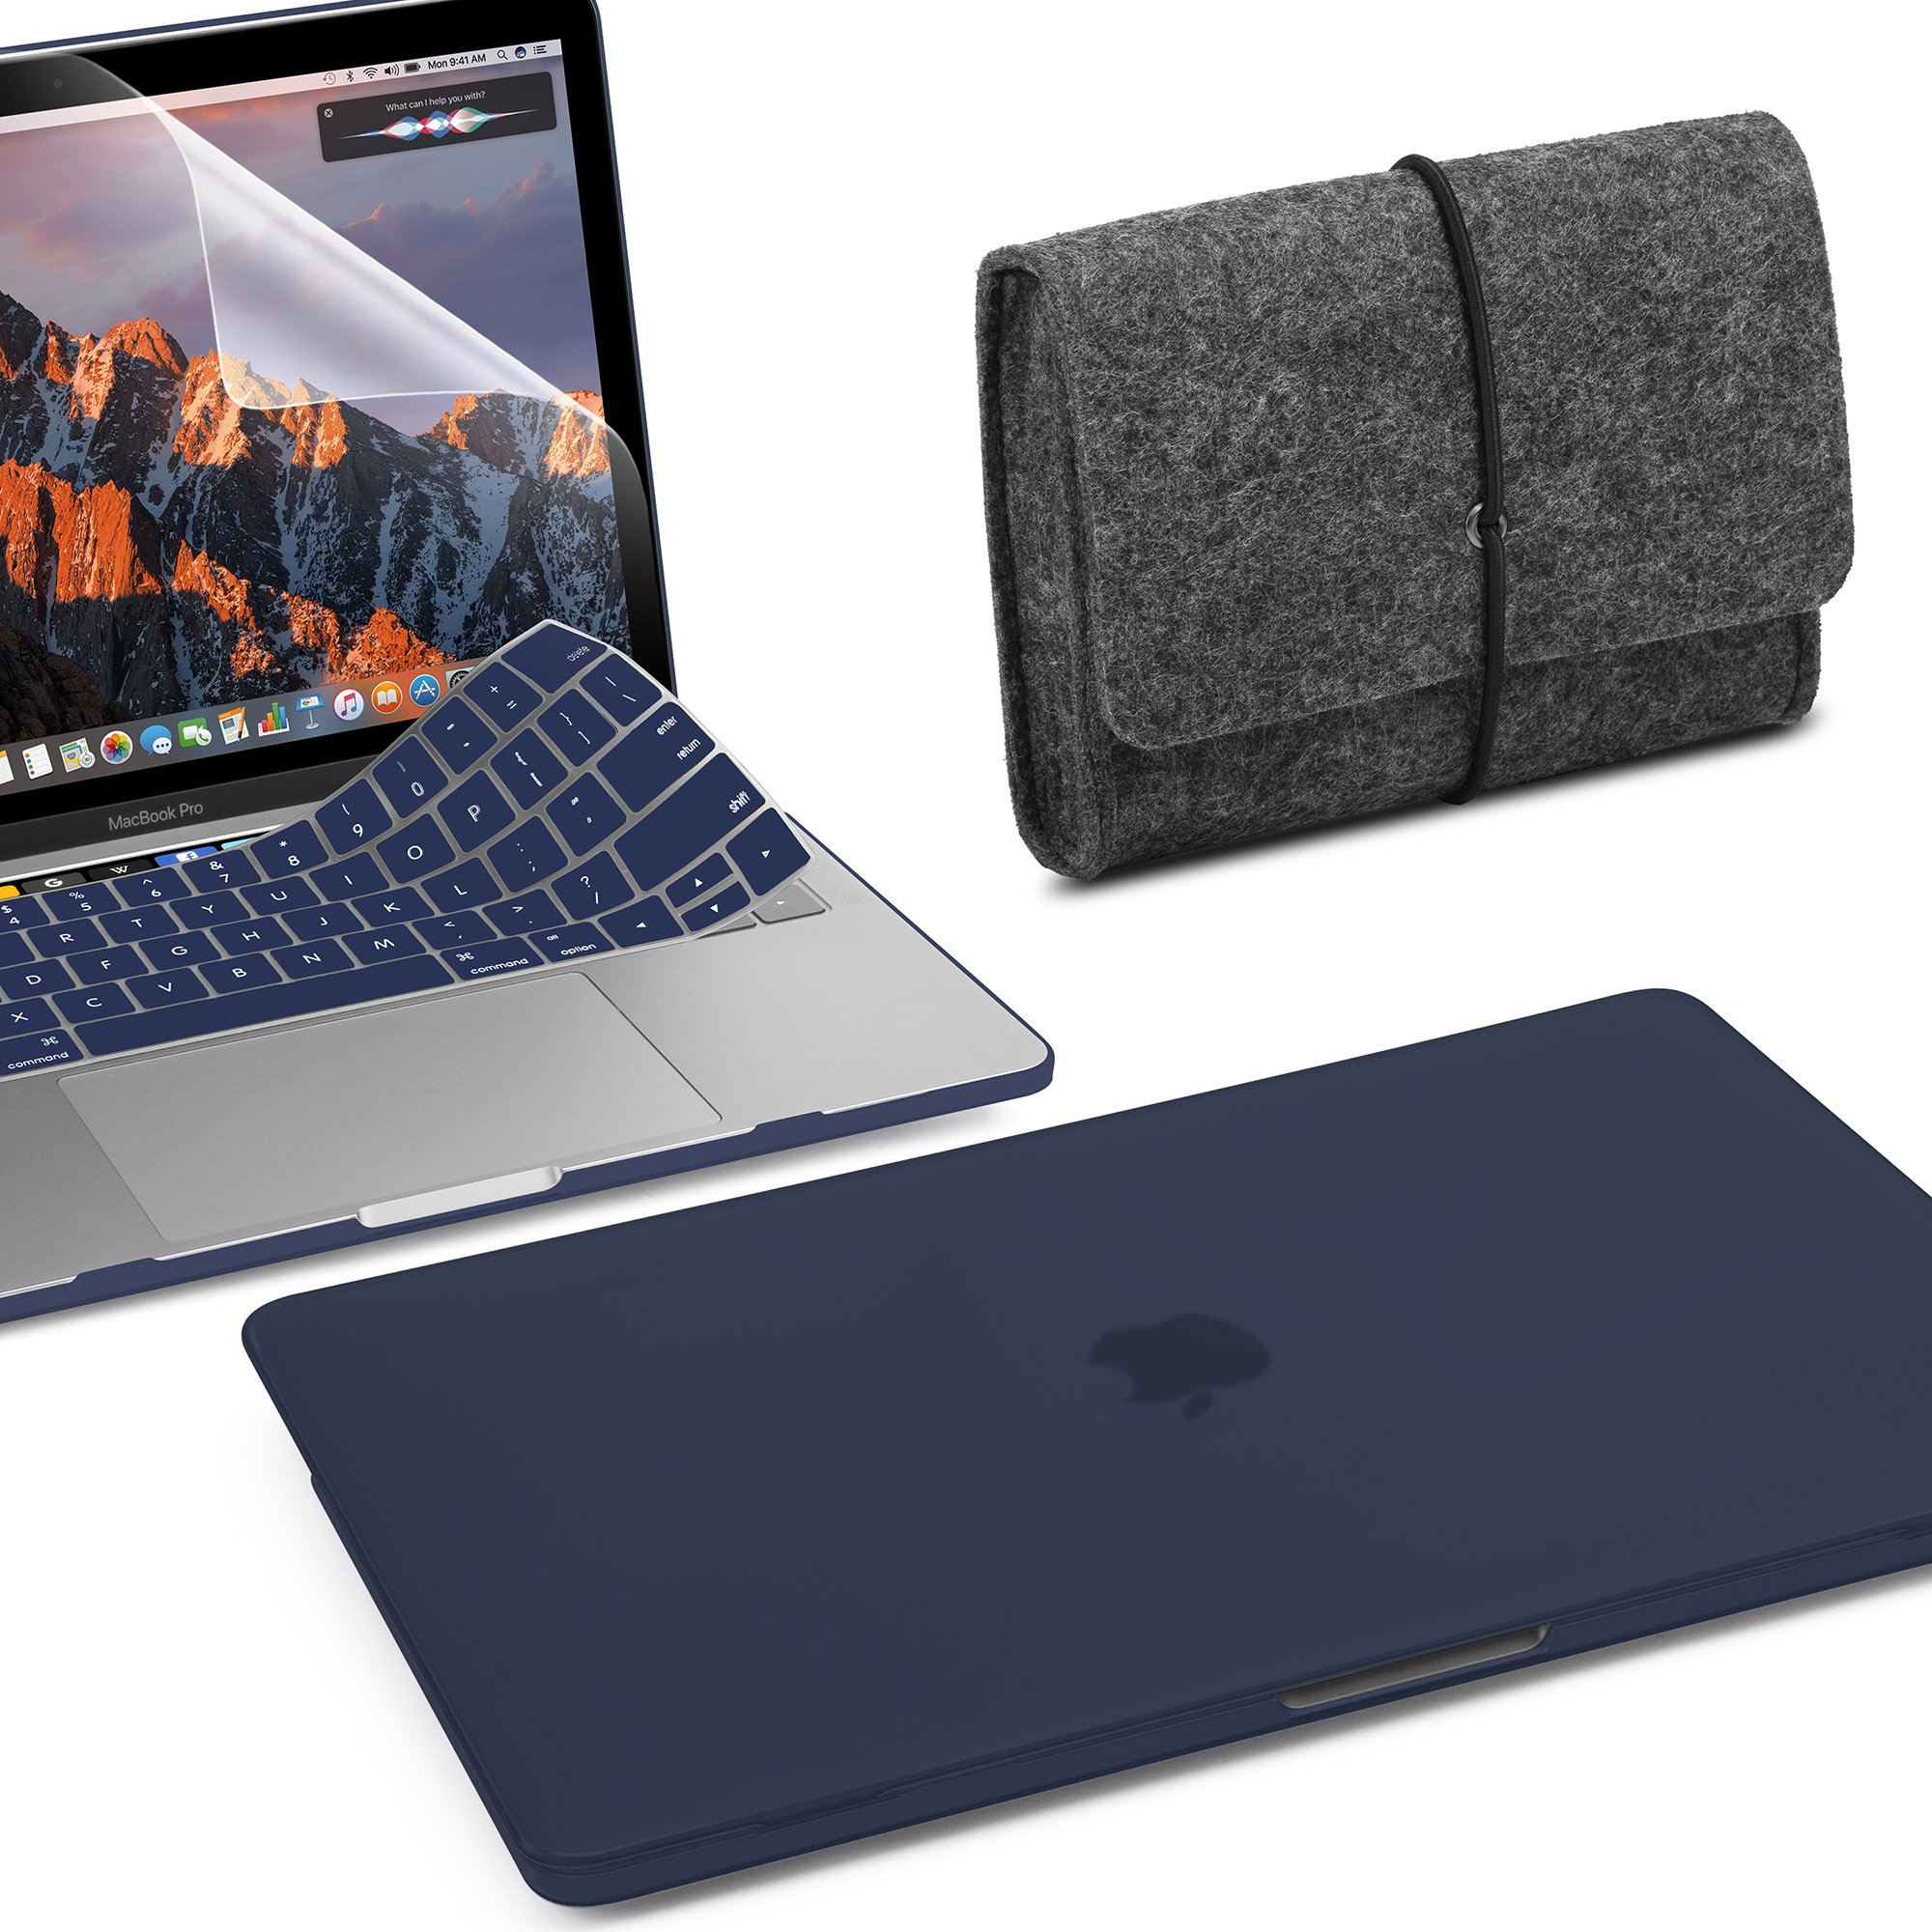 GMYLE MacBook Pro 13 inch Case 2018 2017 2016 Release A1989/A1706/A1708 With/Without Touch Bar, 4 in 1 Bundle Navy Blue Plastic Hard Case with Keyboard Cover, Felt Storage Pouch Bag & Screen Protector